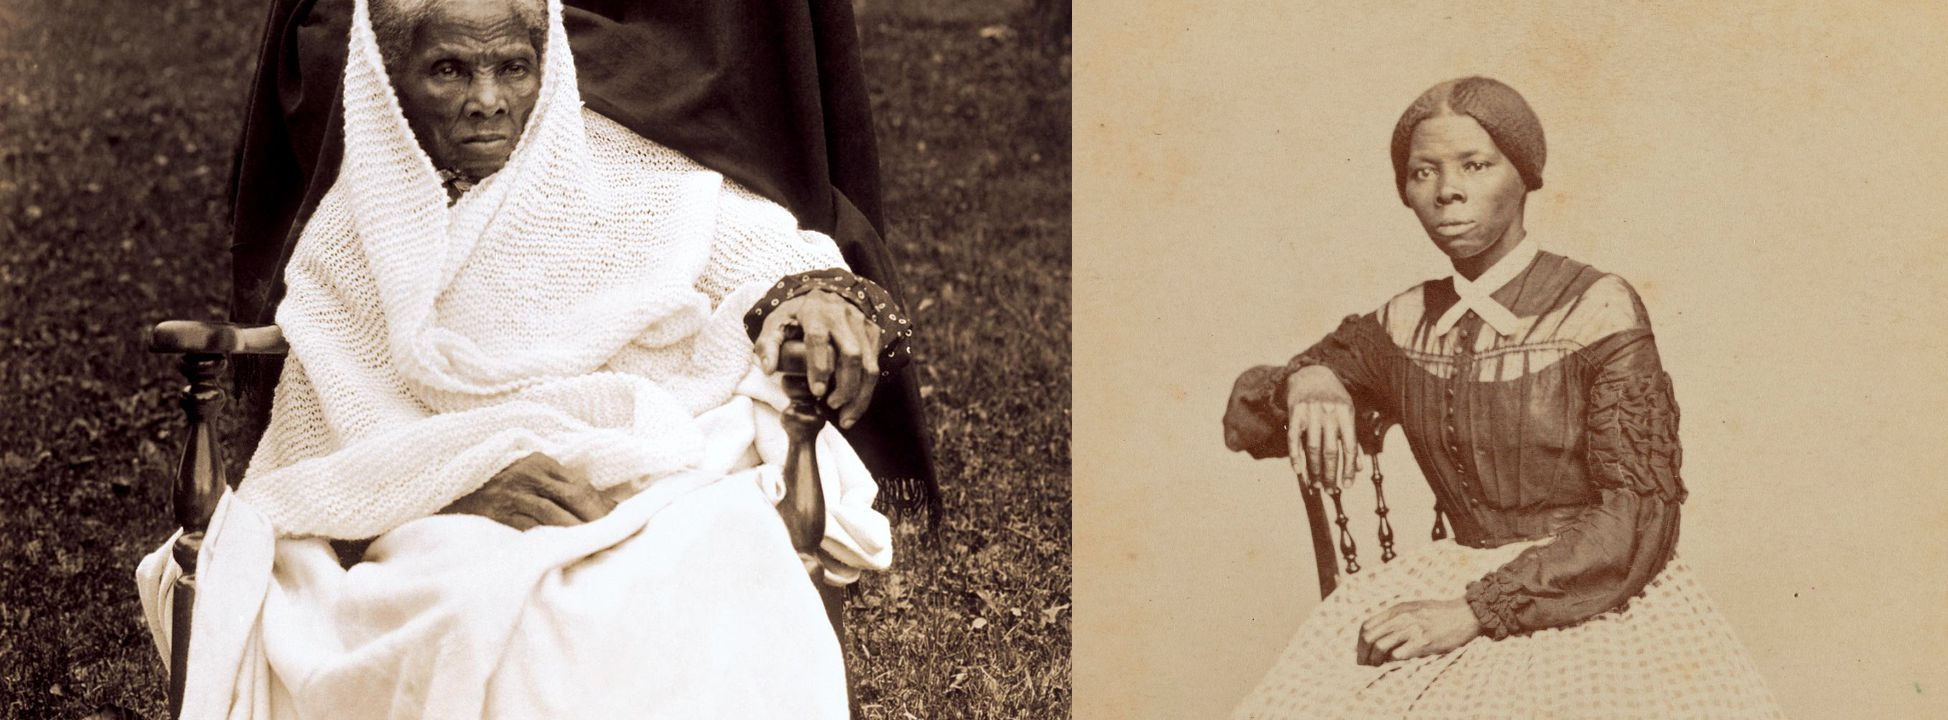 Two photographs of Harriet Tubman. On the left, her in her old age. On the right, her in her youth